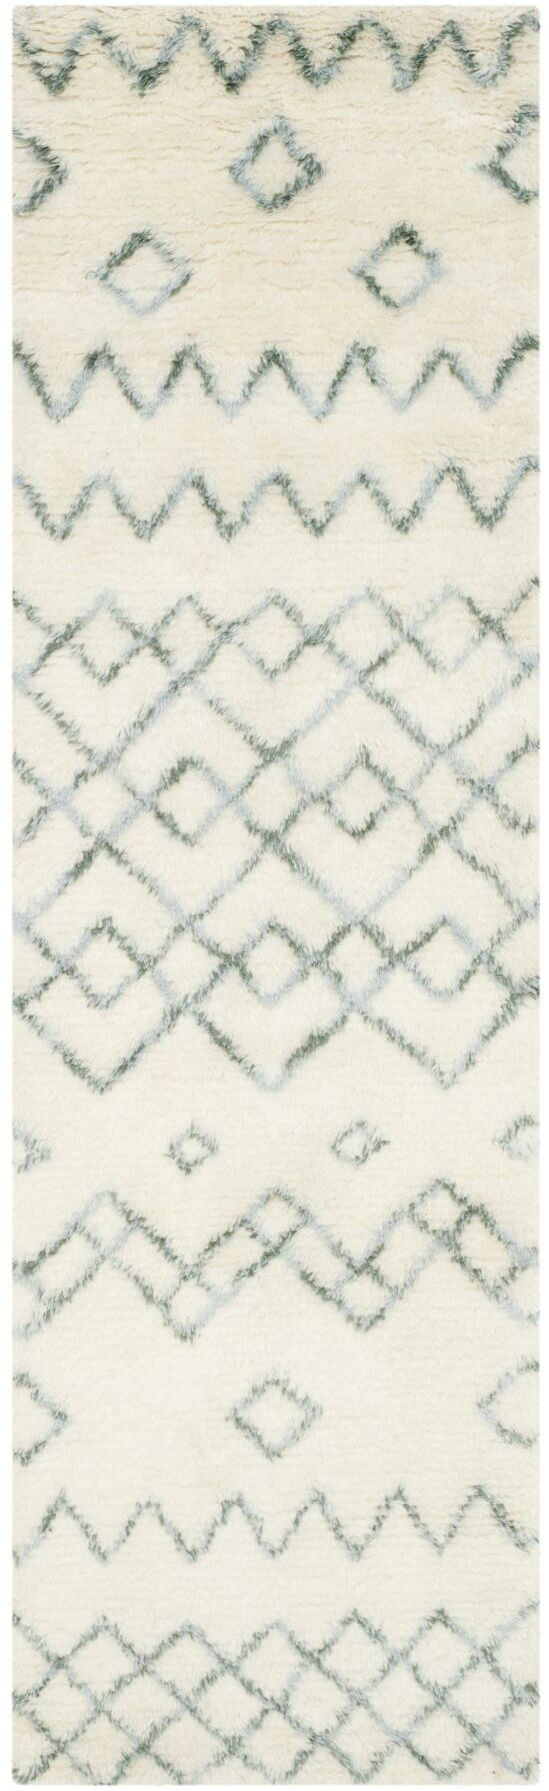 Lockheart Geometric Hand-Tufted Beige/Blue Area Rug Rug Size: Rectangle 4' x 6'